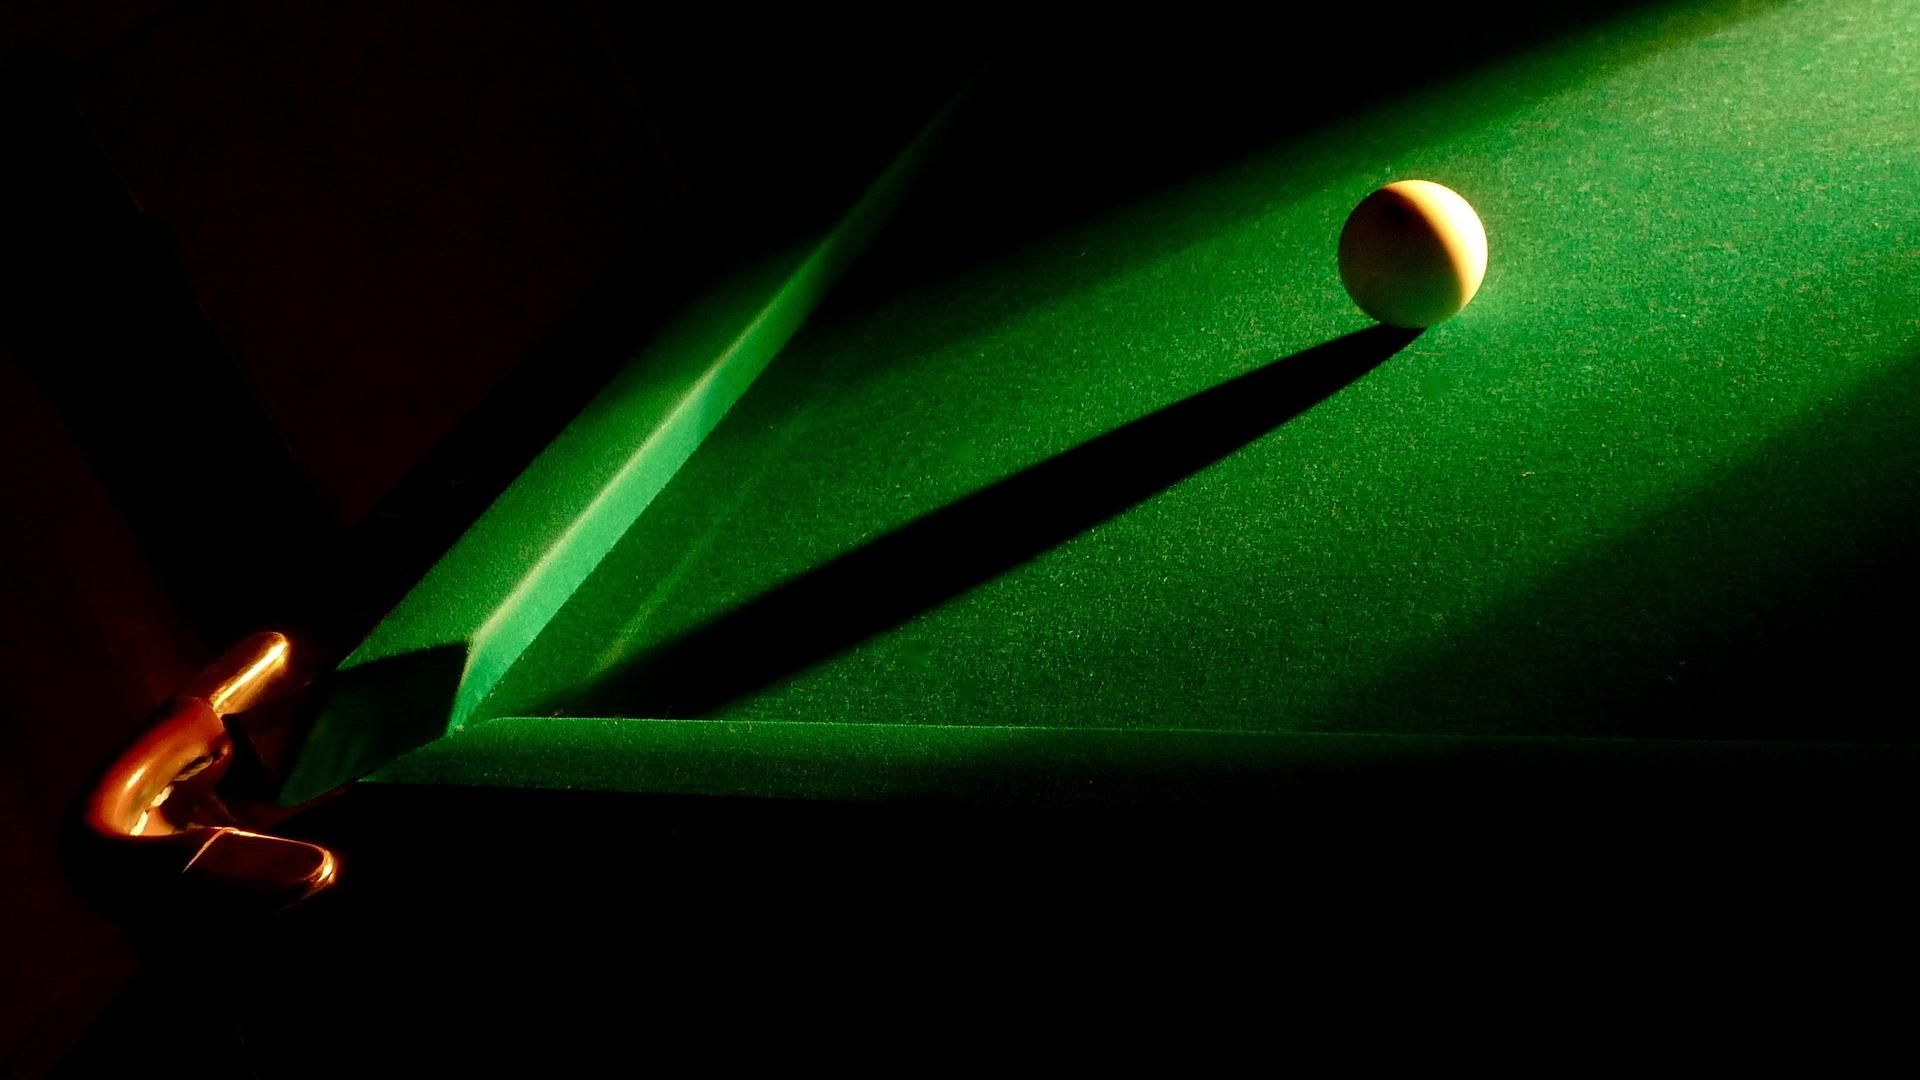 hd wallpaper sports snooker Sessizler Voiceless 1920x1080